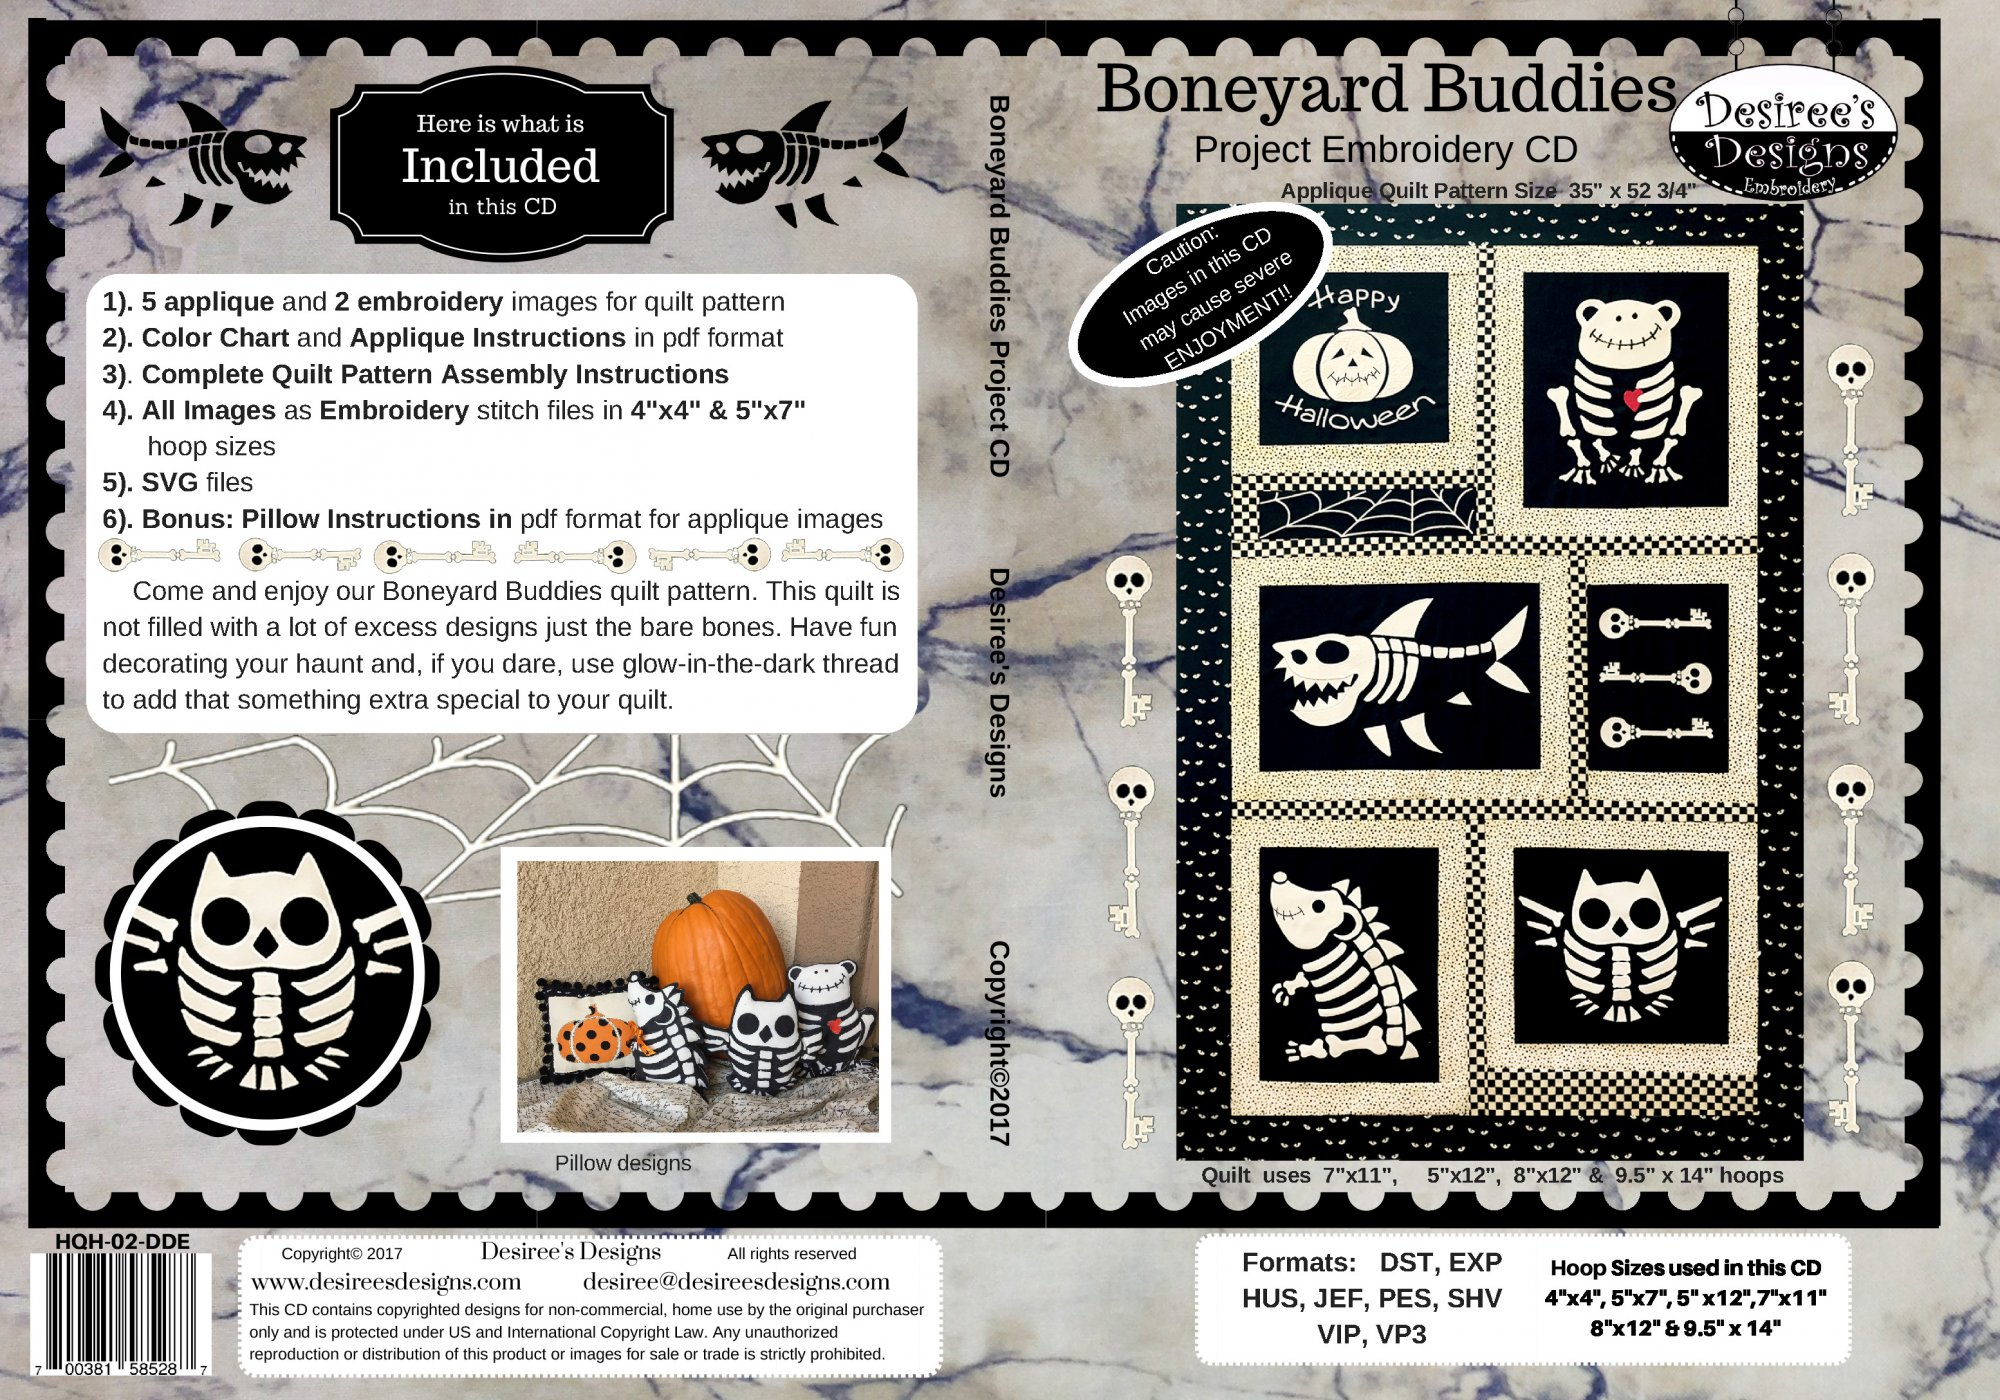 Boneyard Buddies Embroidery CD (HQH-02-DDE)